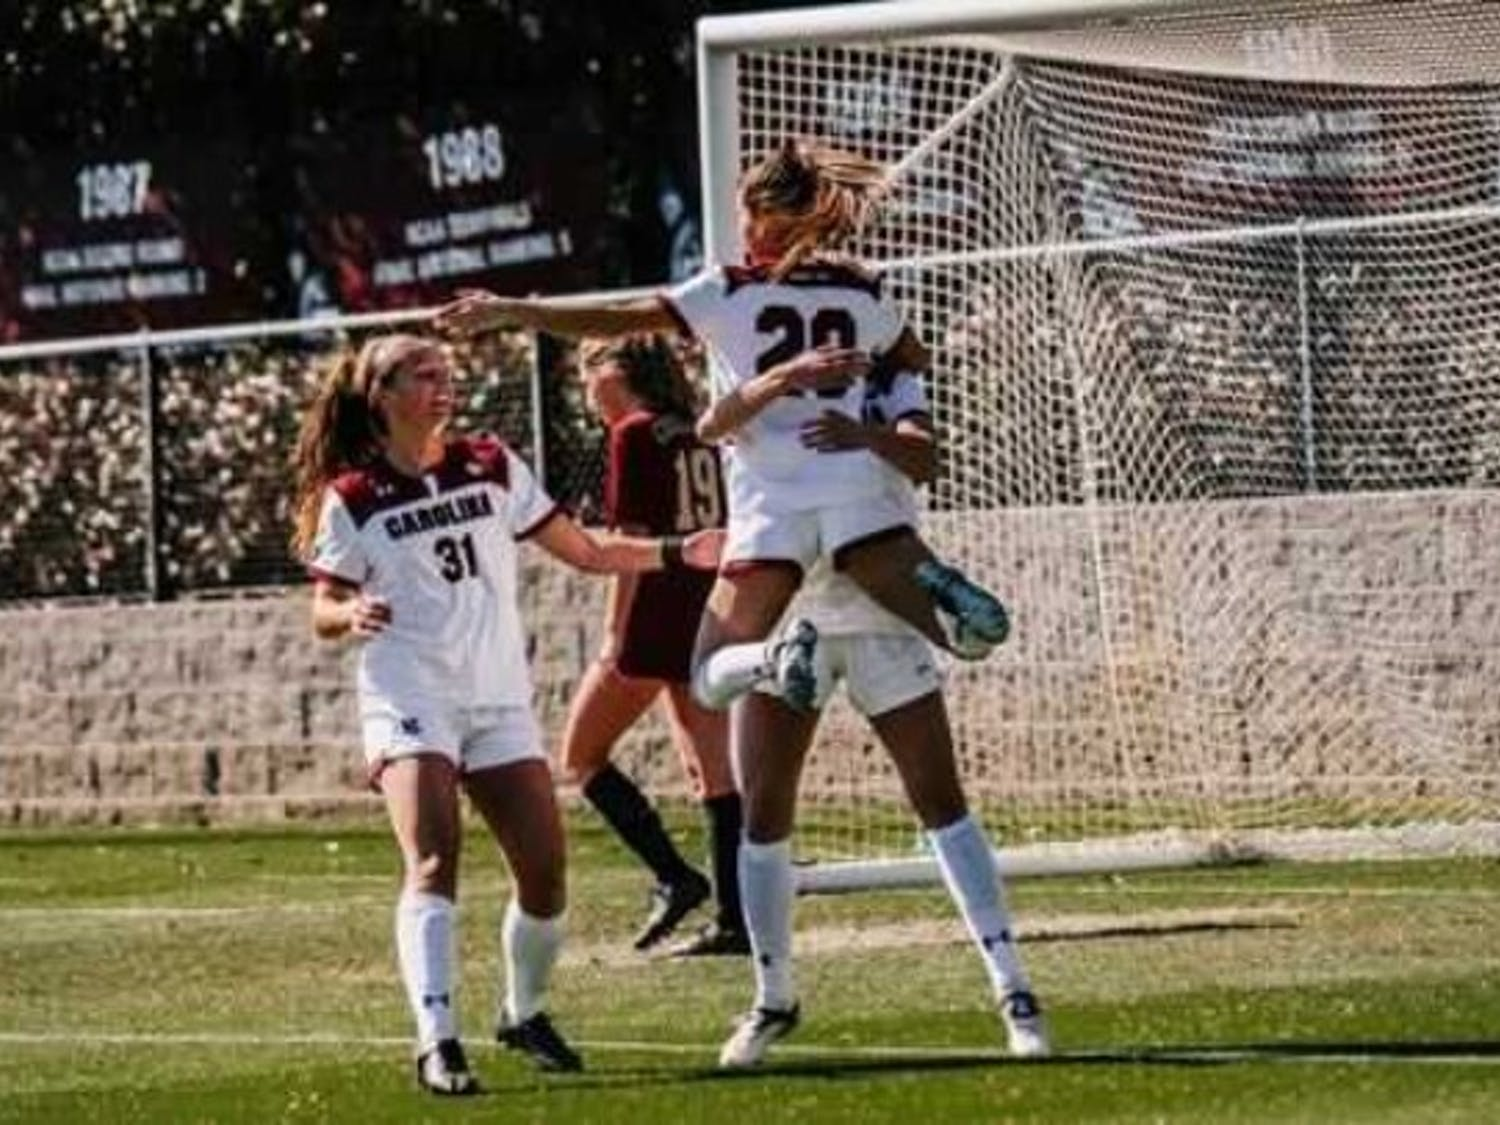 Members of the South Carolina women's soccer team celebrate a goal in their Sunday win over College of Charleston.